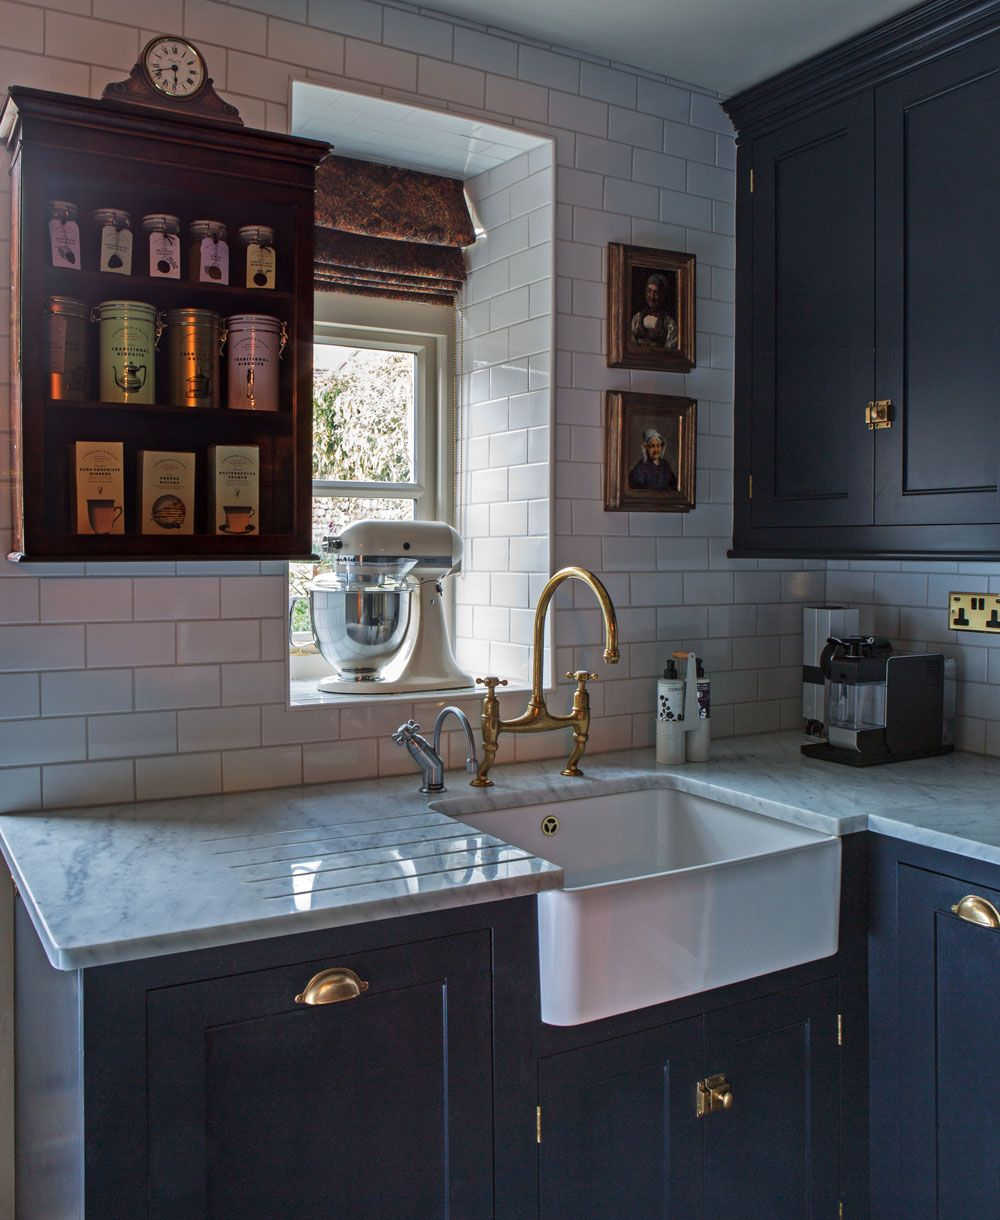 English Kitchen Design: A Beautiful Farmhouse Sink, DeVOL Aged Brass Tap And Hardware. This Dreamy Classic English